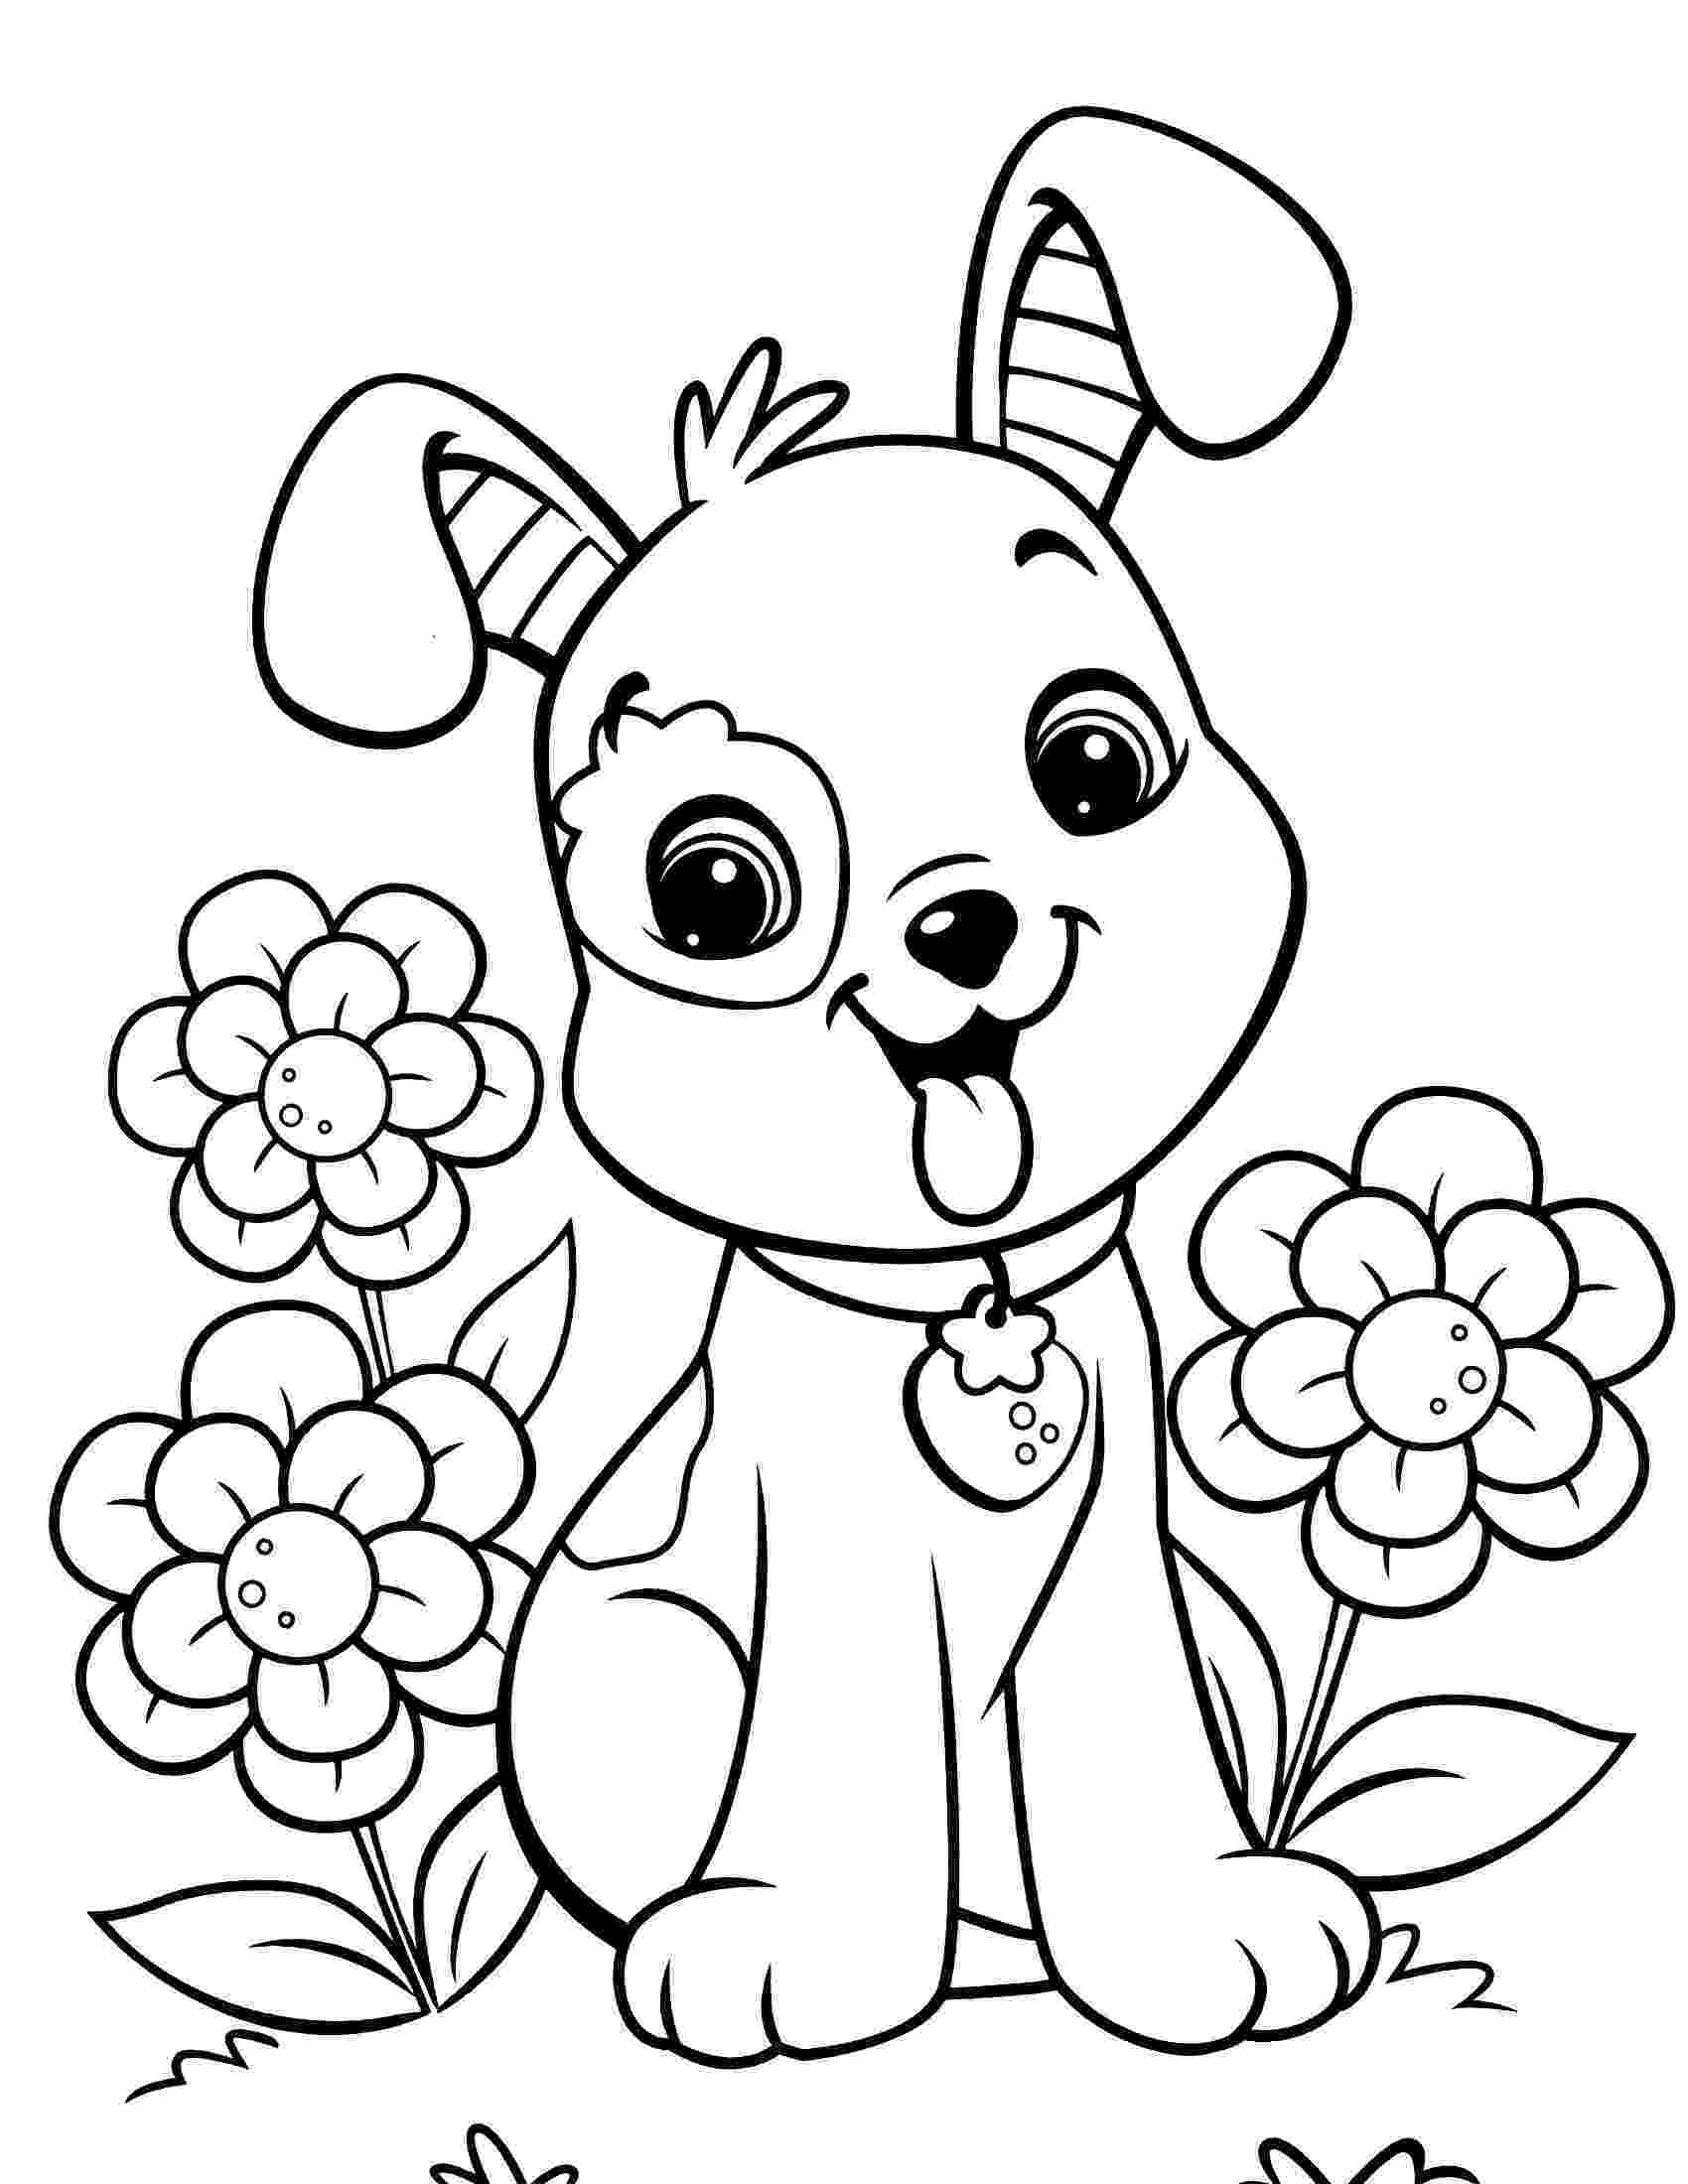 free dog coloring pages free printable dog coloring pages dog coloring pages coloring pages dog free